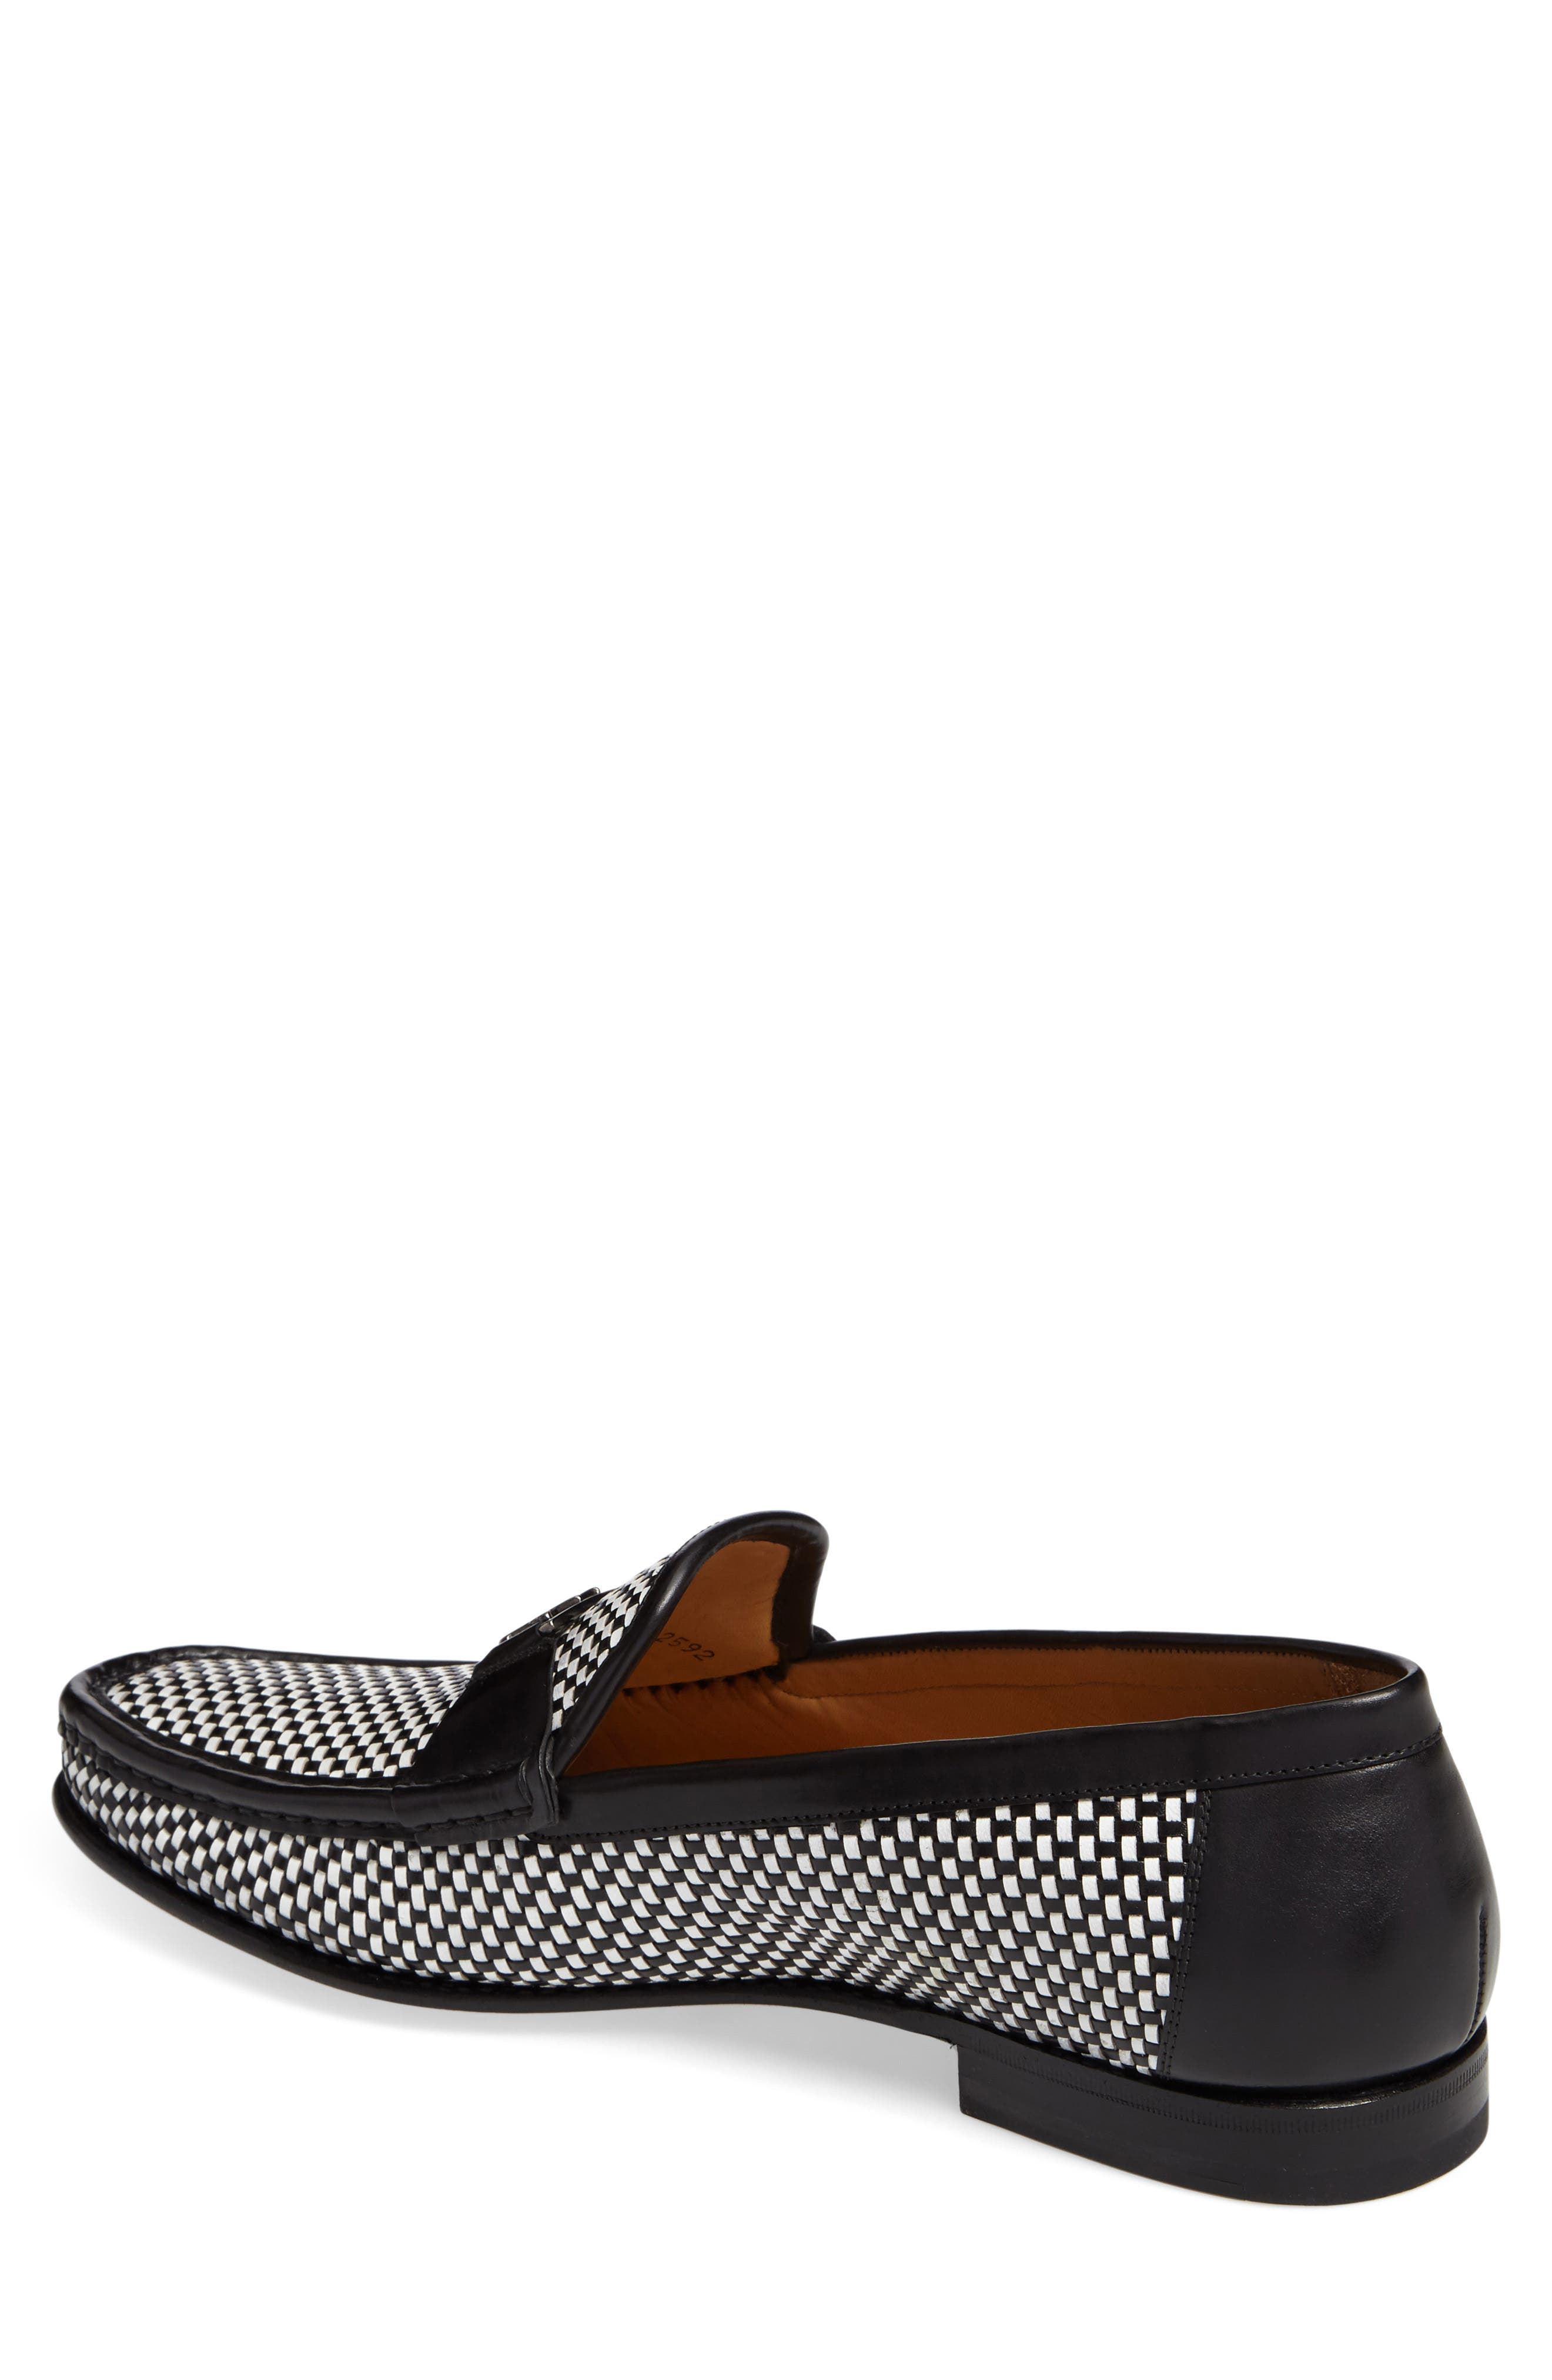 Hallman Woven Loafer,                             Alternate thumbnail 2, color,                             BLACK/ WHITE LEATHER